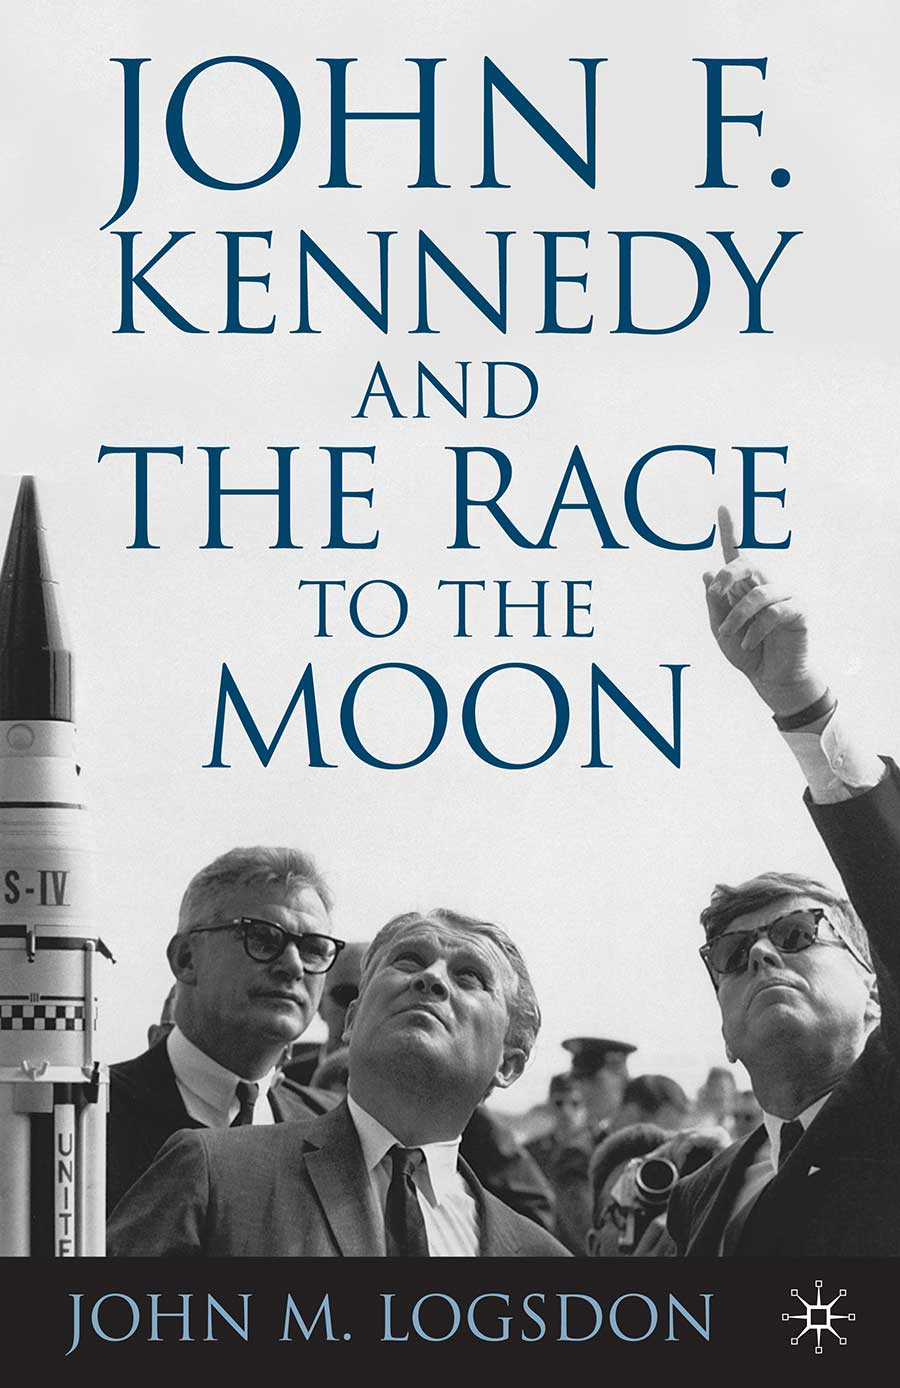 """John F. Kennedy and the Race to the Moon (2010) - """"A comprehensive and insightful retrospect of the conception and early days of Project Apollo.""""– Neil Armstrong, Apollo 11""""Logsdon's book is a high quality scholarly work, deeply researched but still an easy read.""""– Bill Anders, Apollo 8""""An extraordinary book . . . How President Kennedy reached his fateful decision to enter the space race to reach the Moon is now told fully in an insightful and authoritative way.""""– Von Hardesty, Smithsonian National Air and Space Museum"""